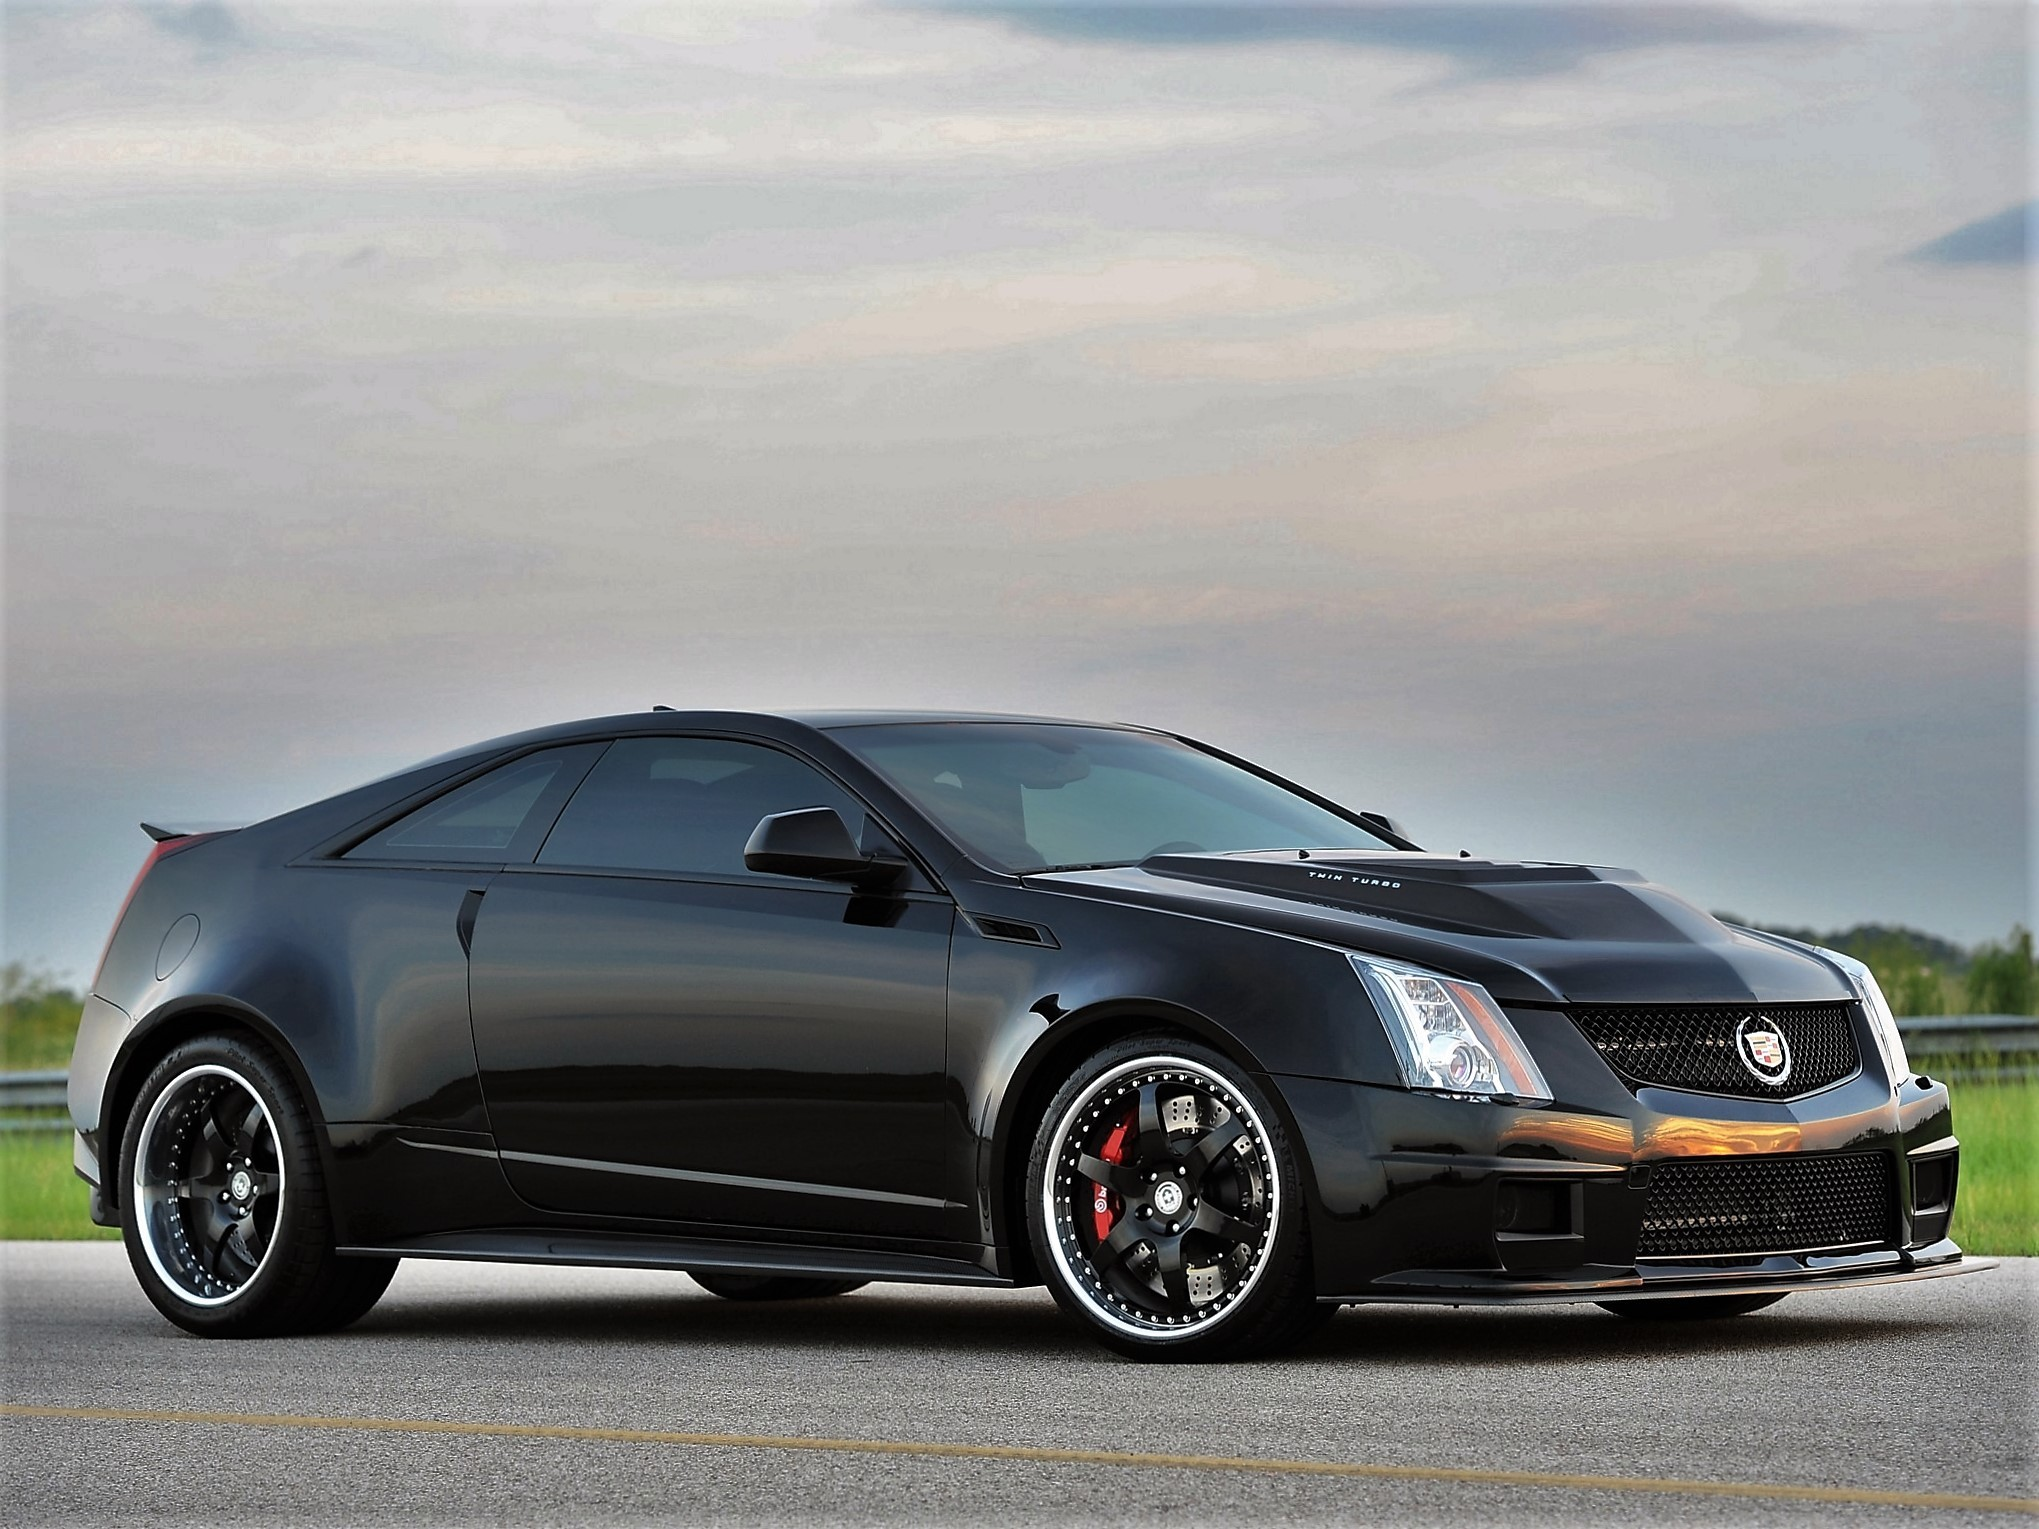 2012 Hennessey - Cadillac CTS-V VR1200 Twin Turbo Coupe